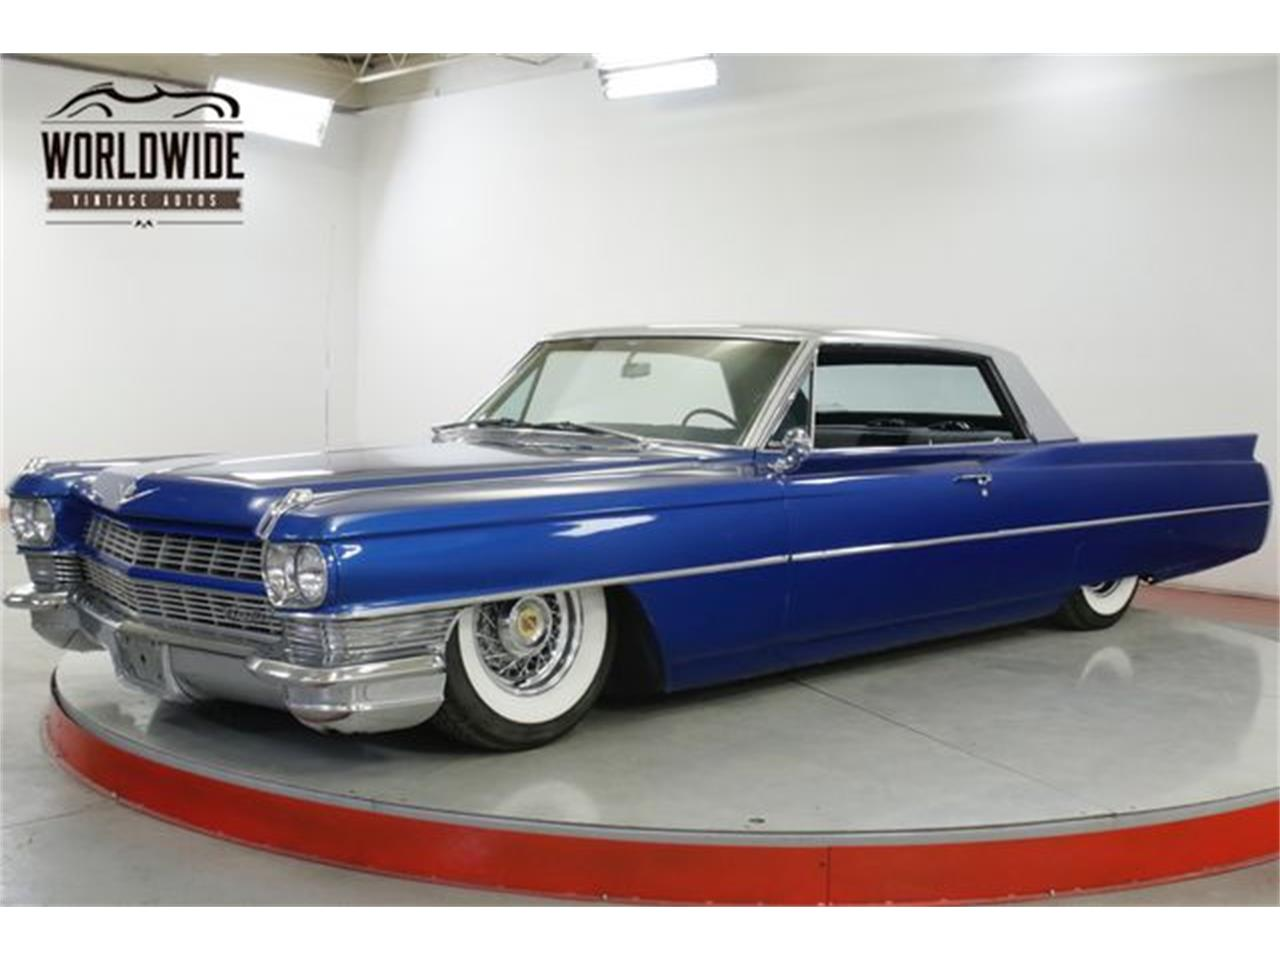 Large Picture of Classic 1964 Cadillac DeVille located in Denver  Colorado - $23,900.00 - QHH2